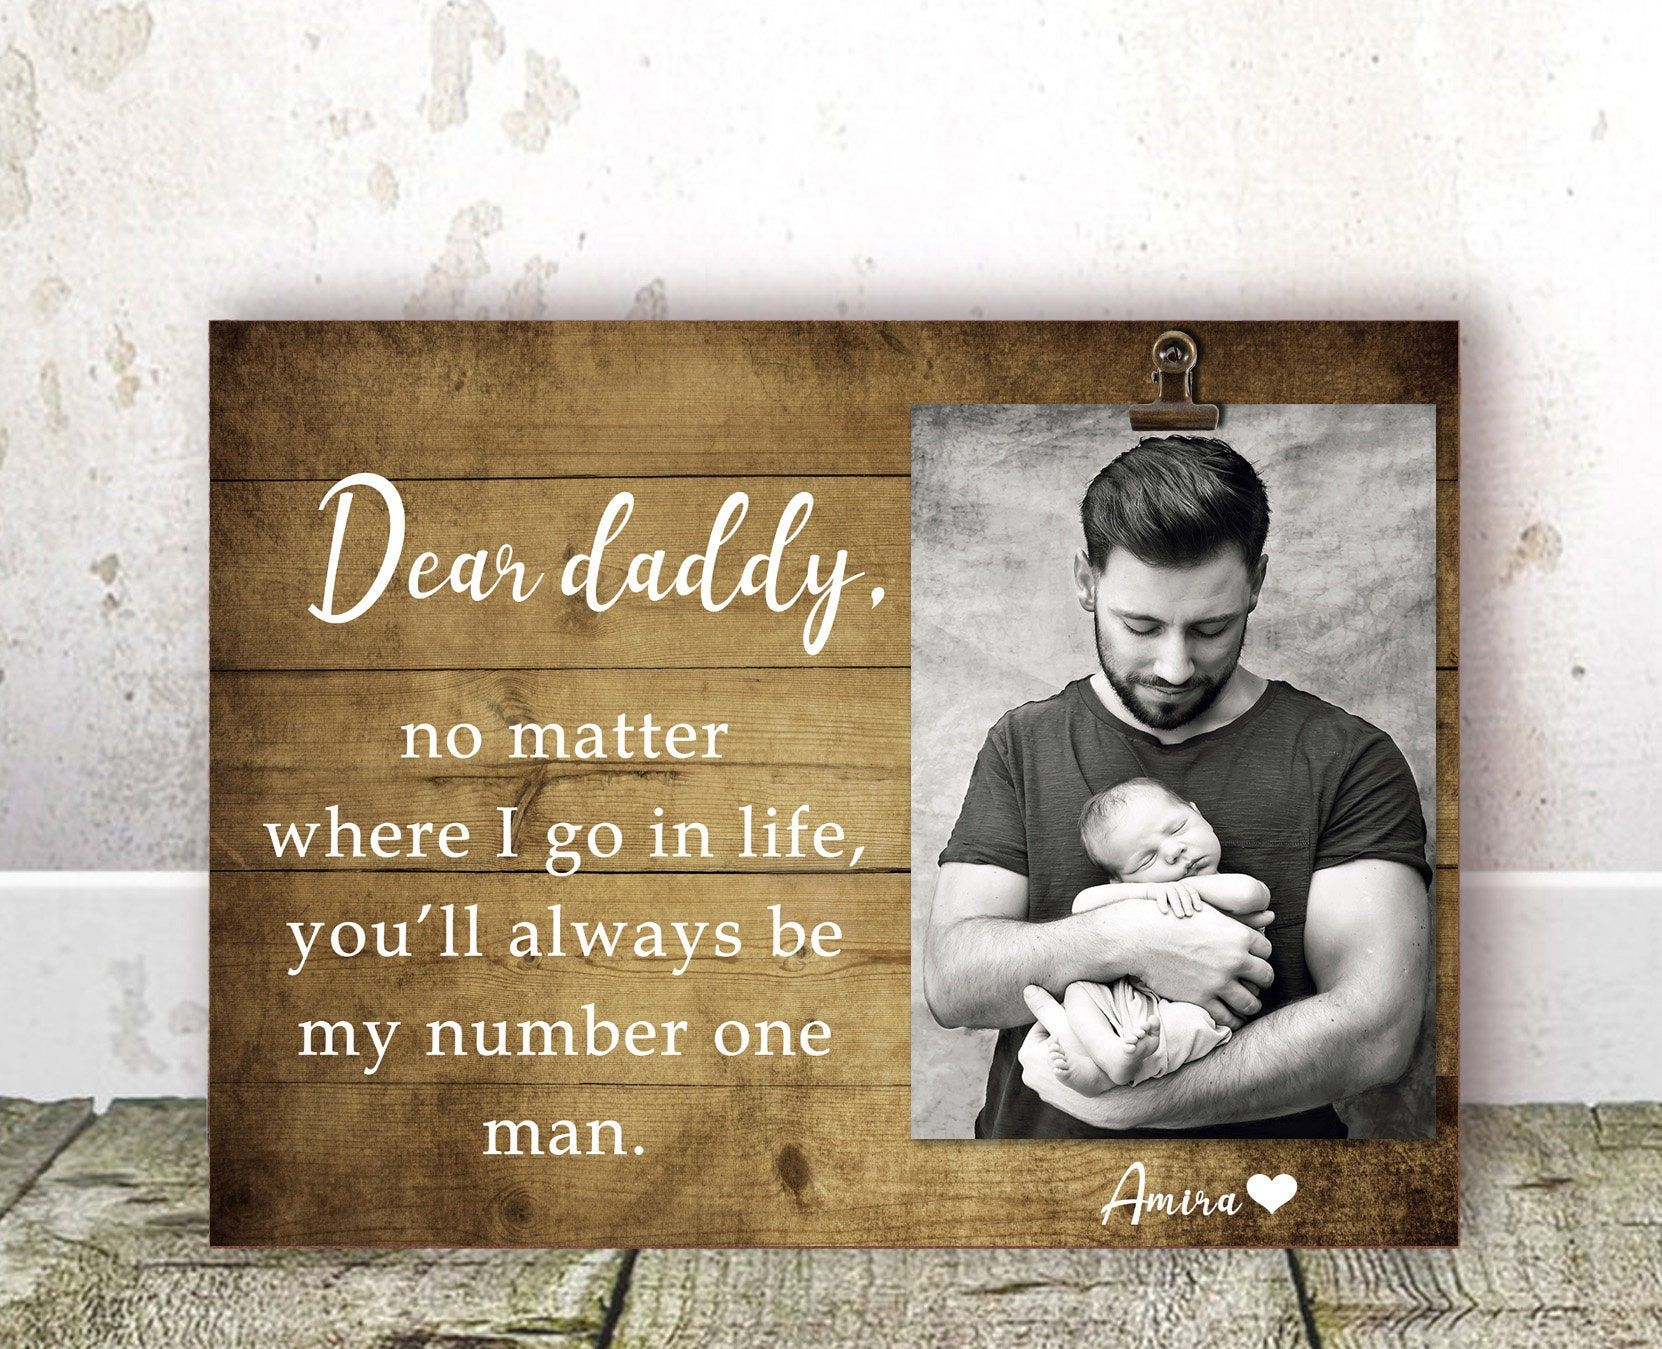 Fathers day gift for dad from daughter daddy frame dad